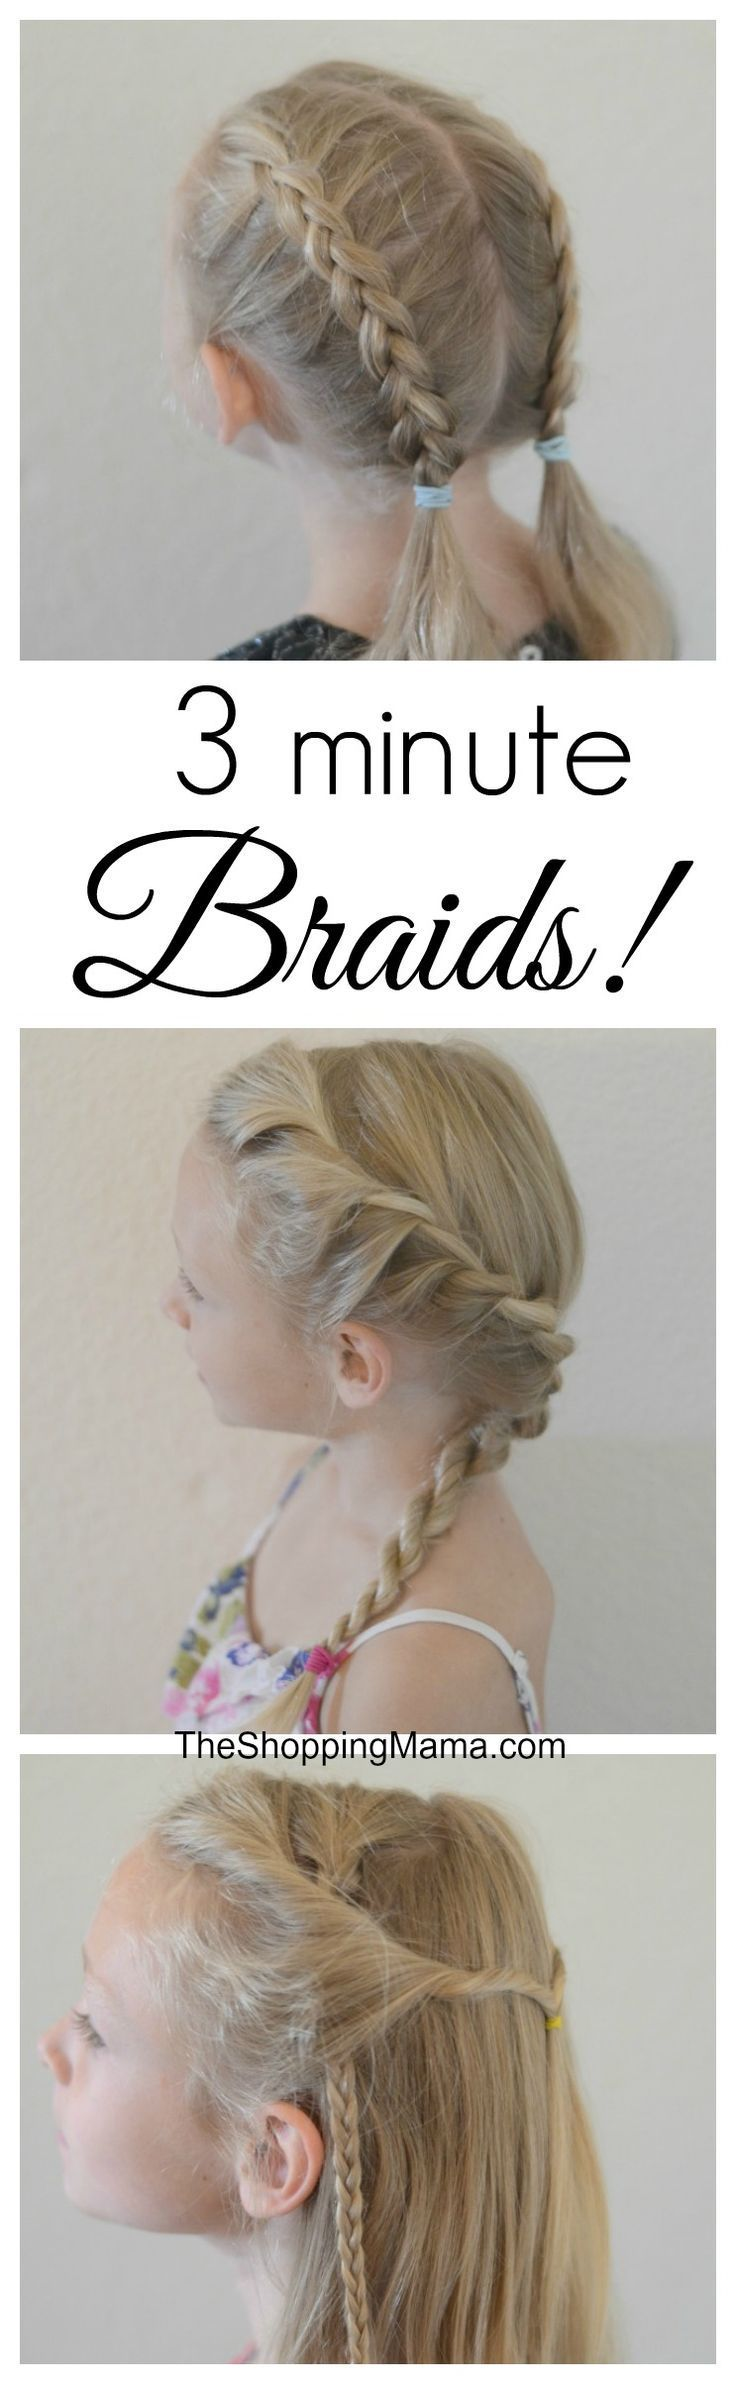 Easy Braided Hairstyles Pleasing 3 Minute Cute And Easy Braids For Girls Makeup  Pinterest